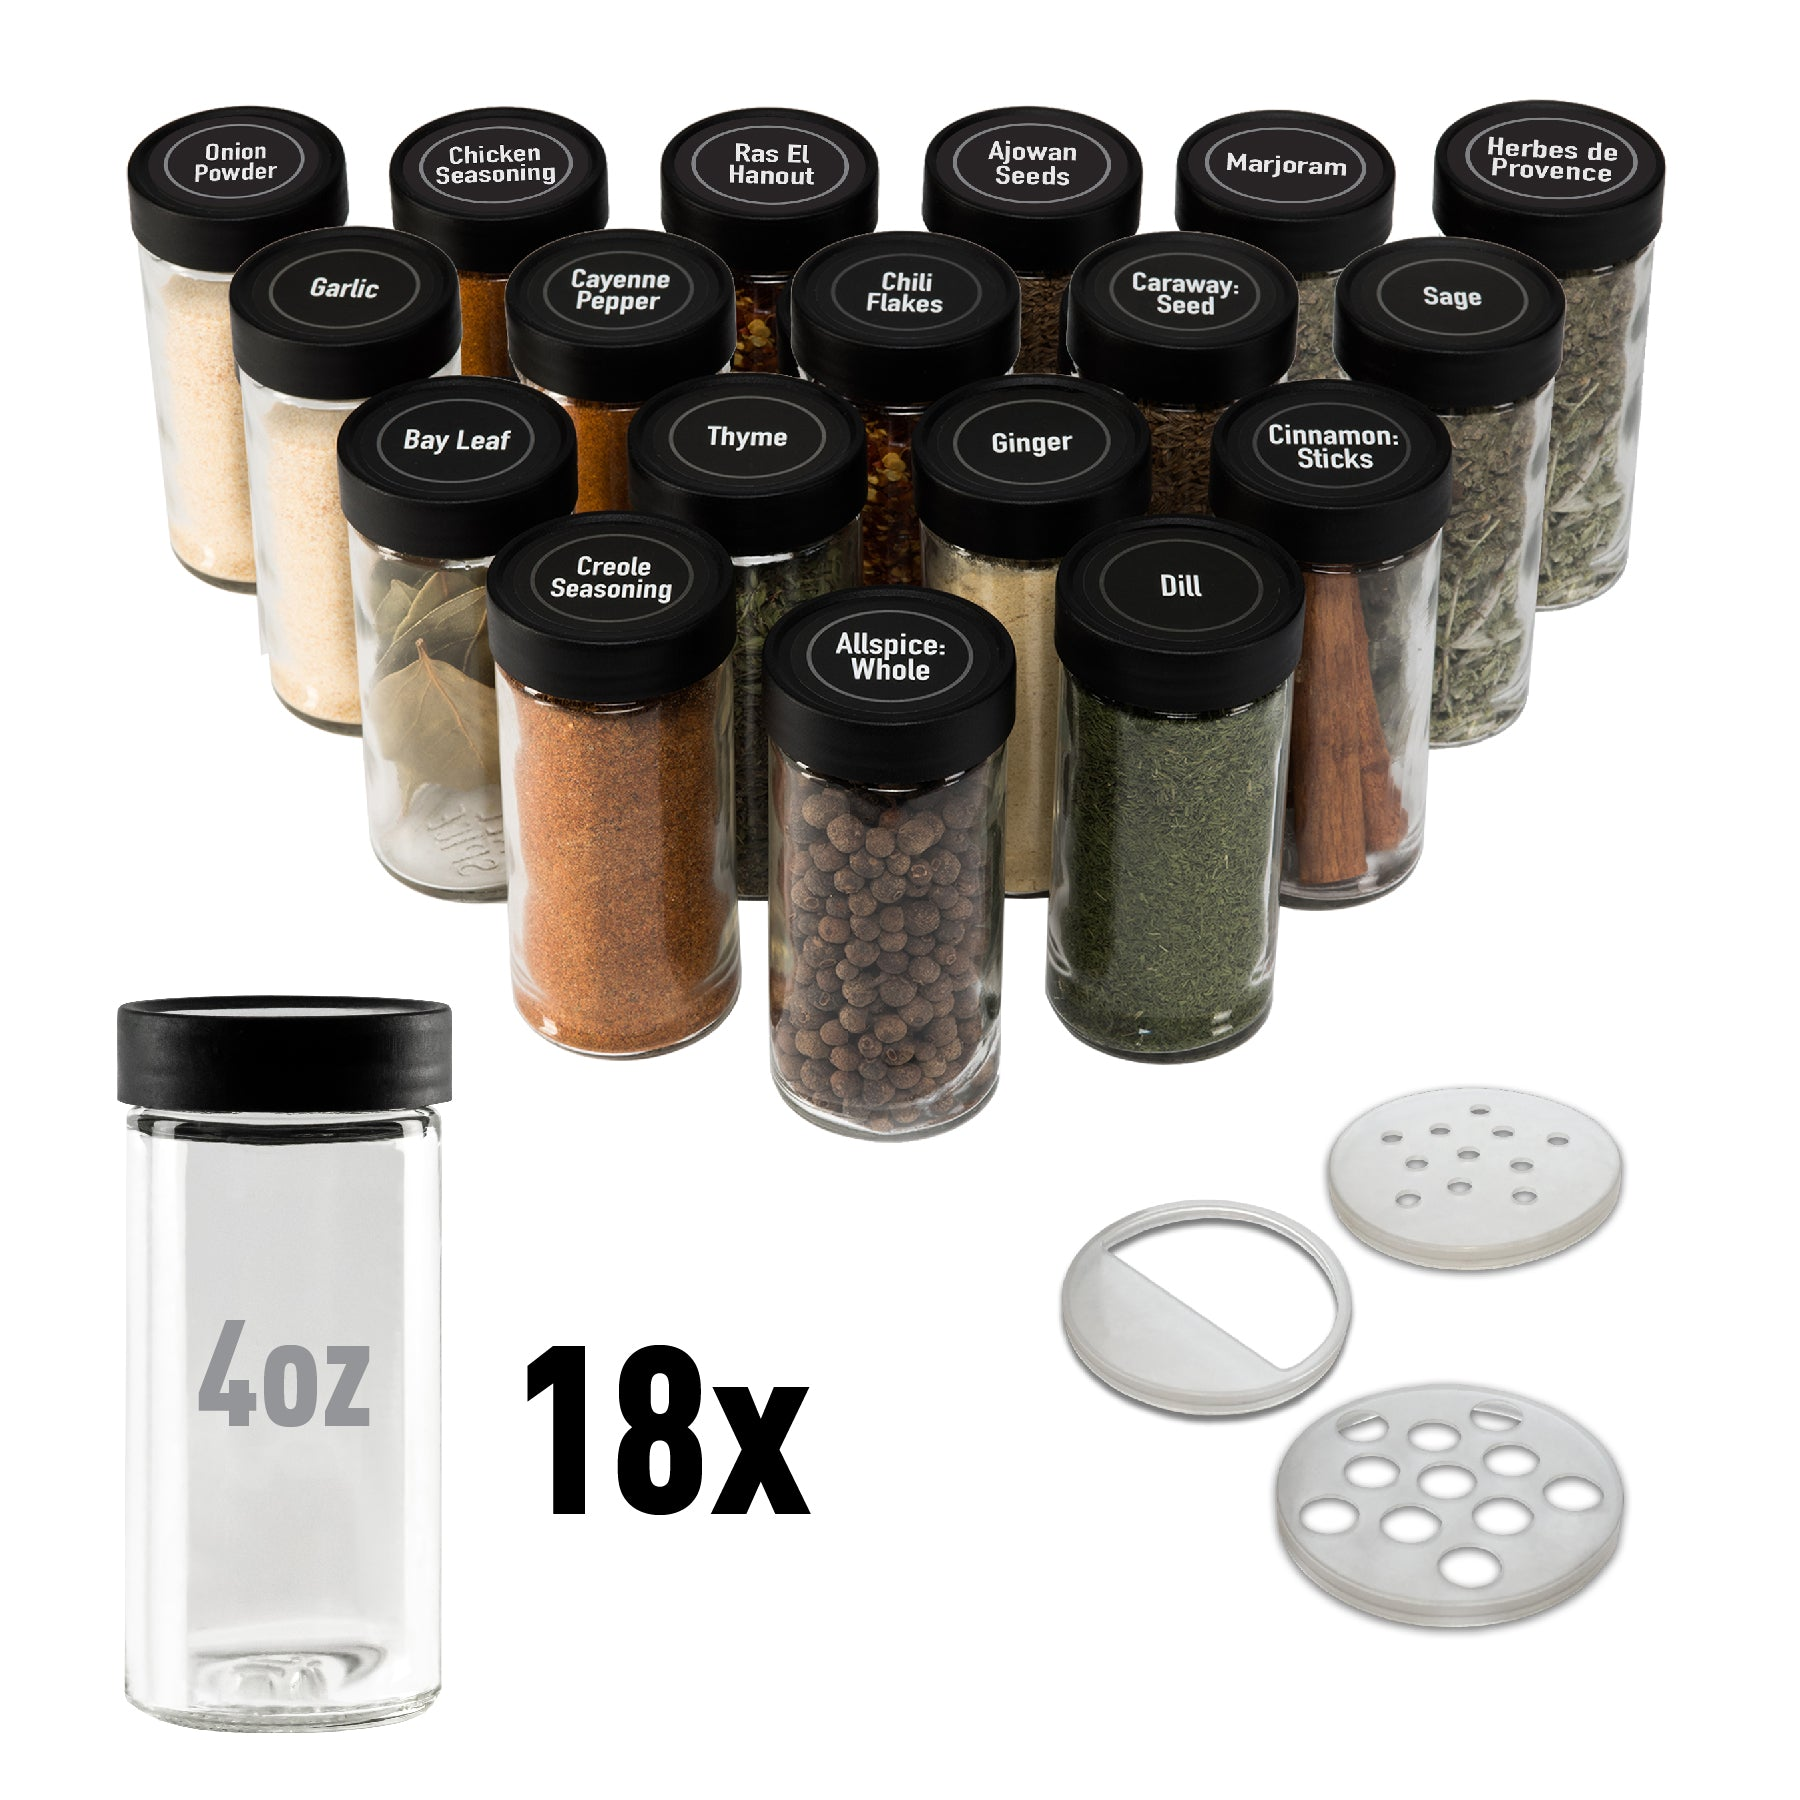 4oz Spice Jars - 18-Pack